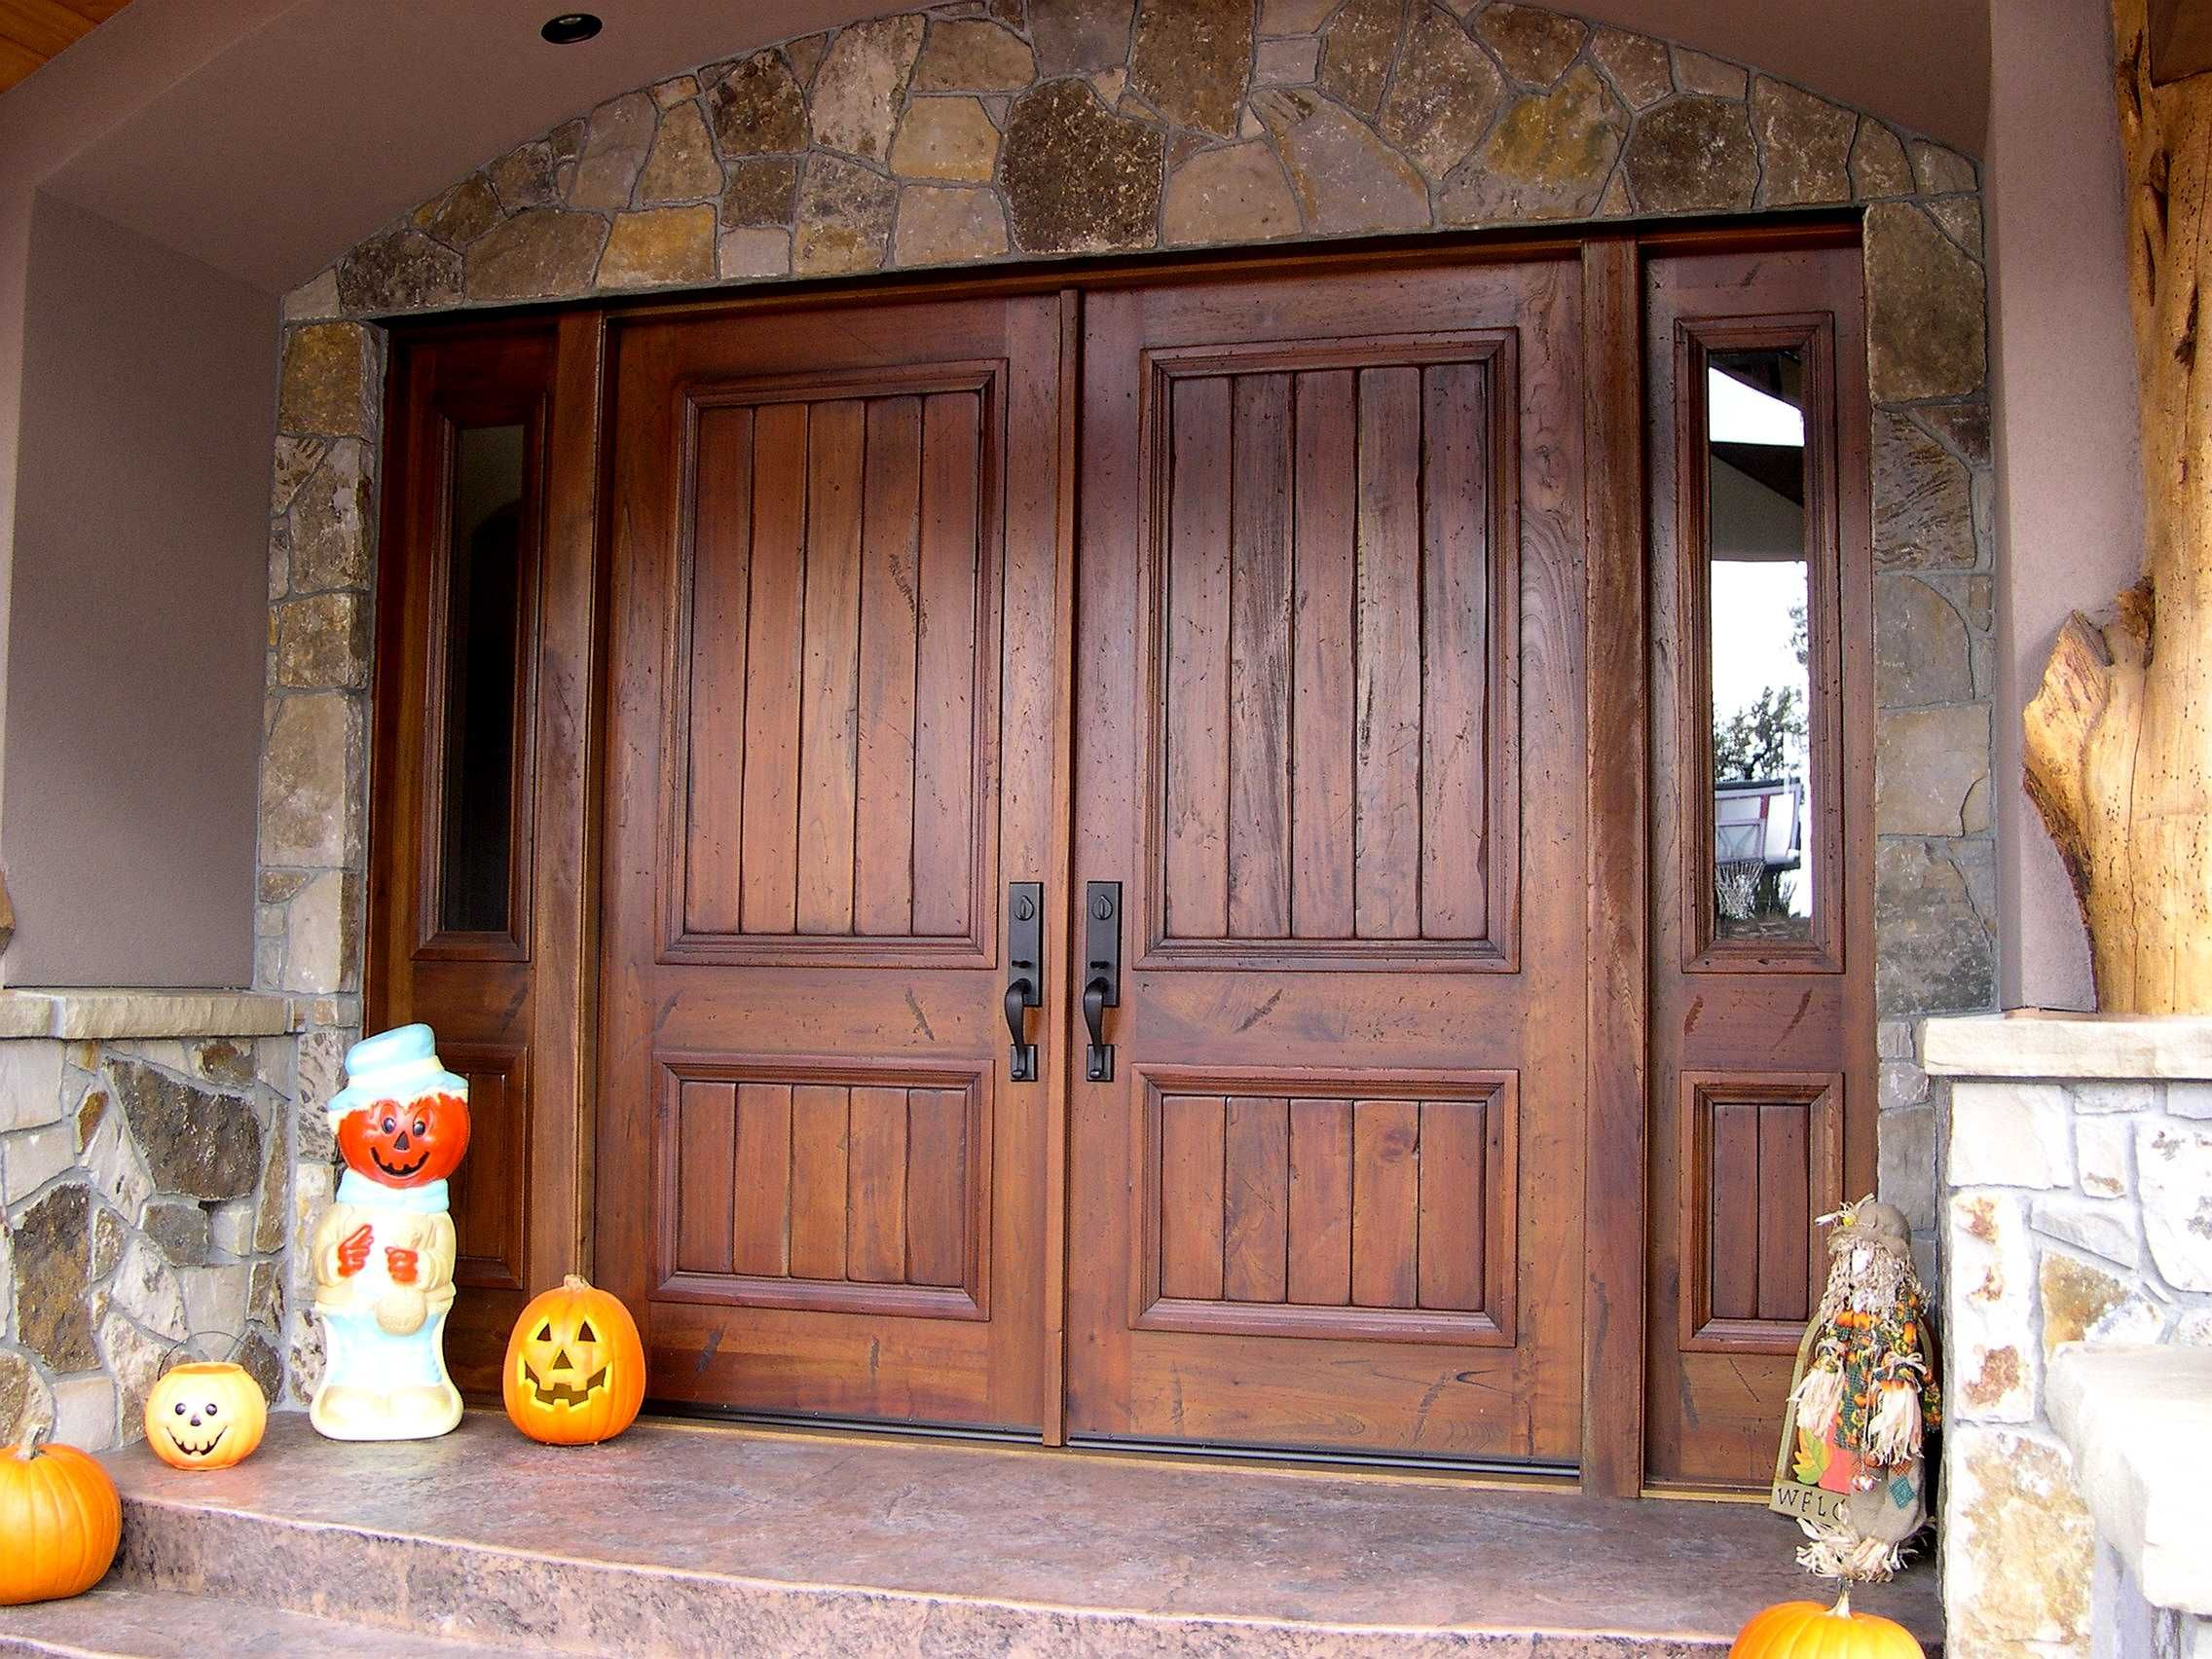 Rustic double front door - Exterior Double Rustic Exterior Entrance Door With Solid Dark Varnished Finishing Design This Would